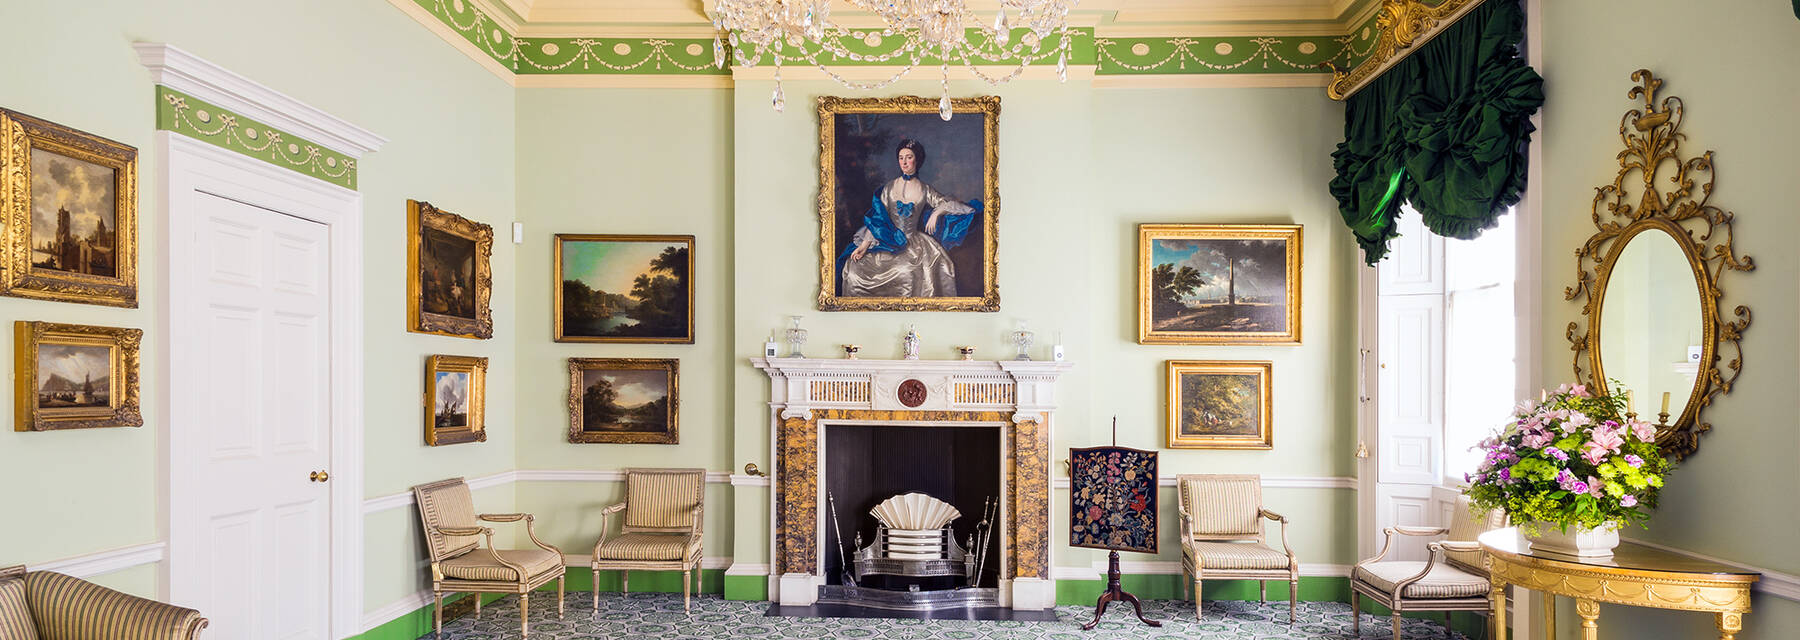 The drawing room of the Georgian House